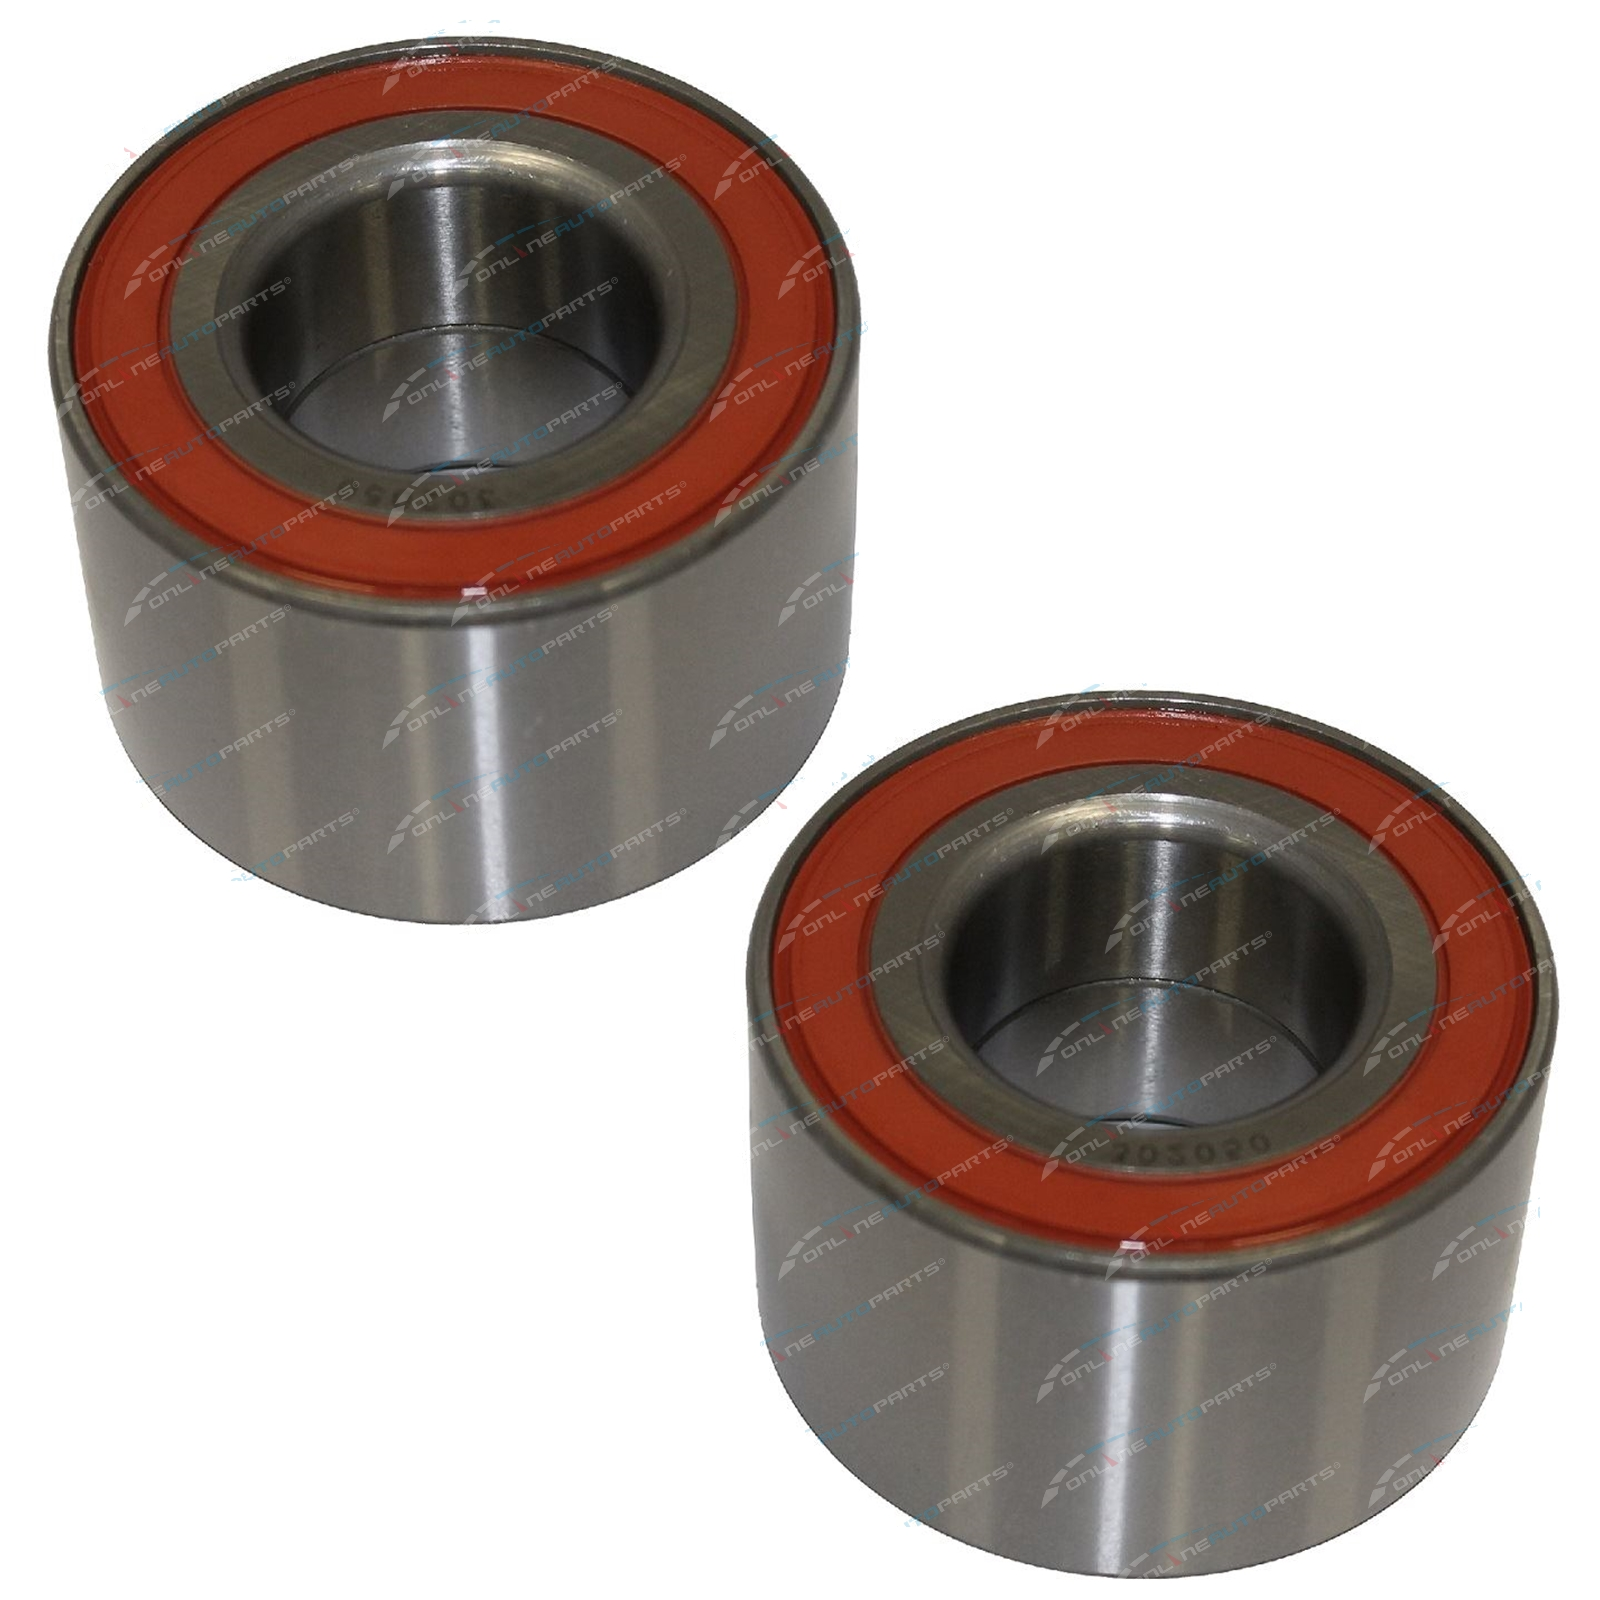 2 rear wheel bearing kits gm holden ve 2006 2012 commodore berlin 2 rear wheel bearing kits gm holden ve 2006 2012 commodore berlina calais hsv vanachro Choice Image